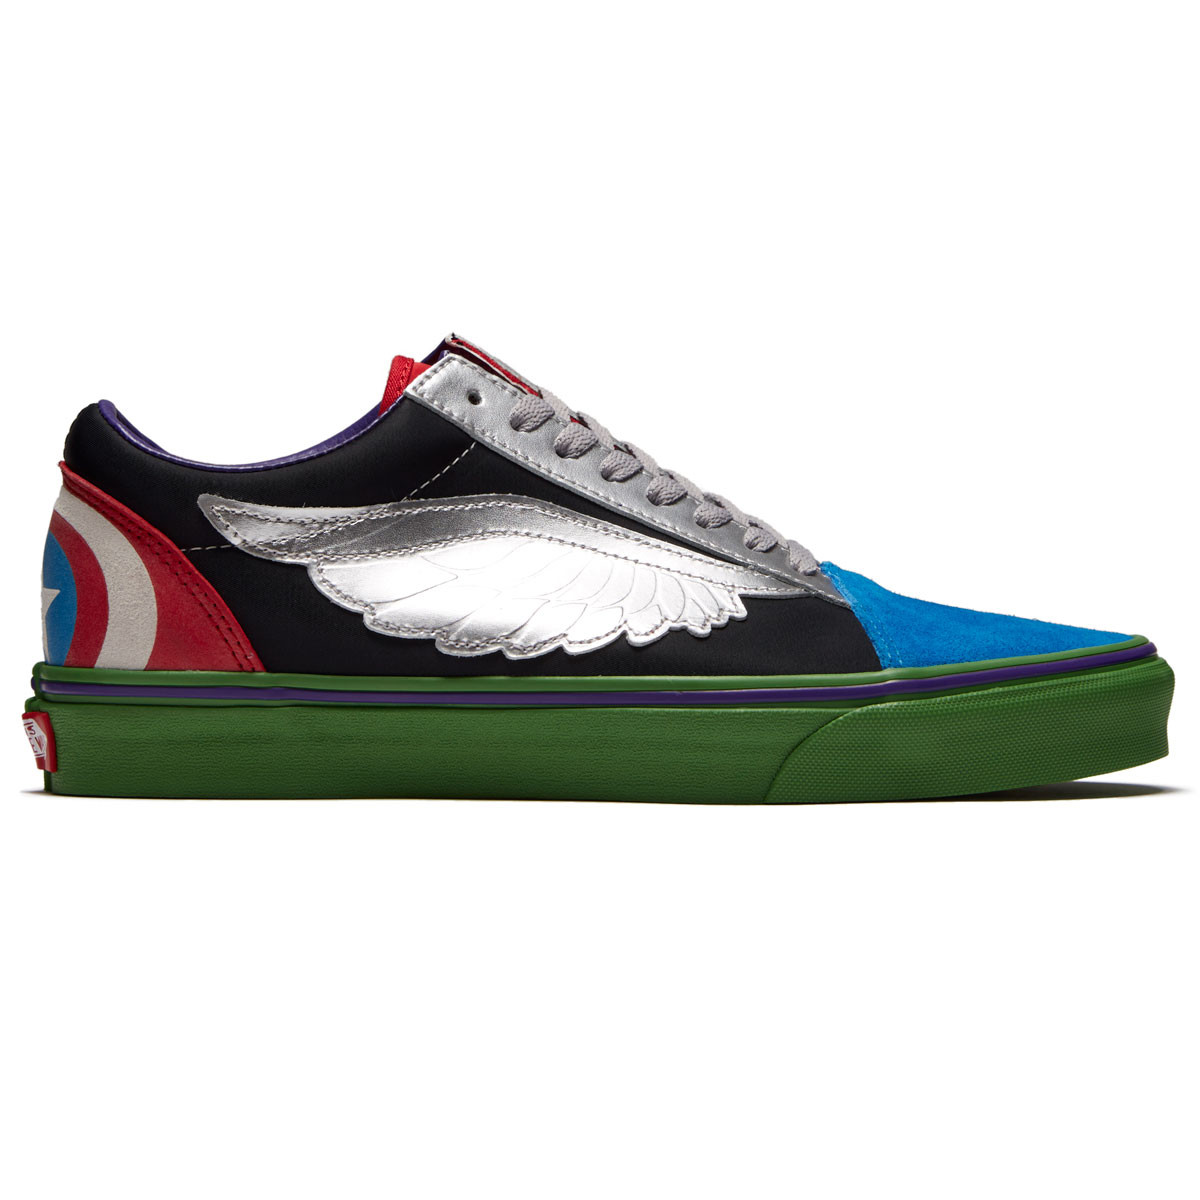 Vans X Marvel Classic Old Skool Shoes